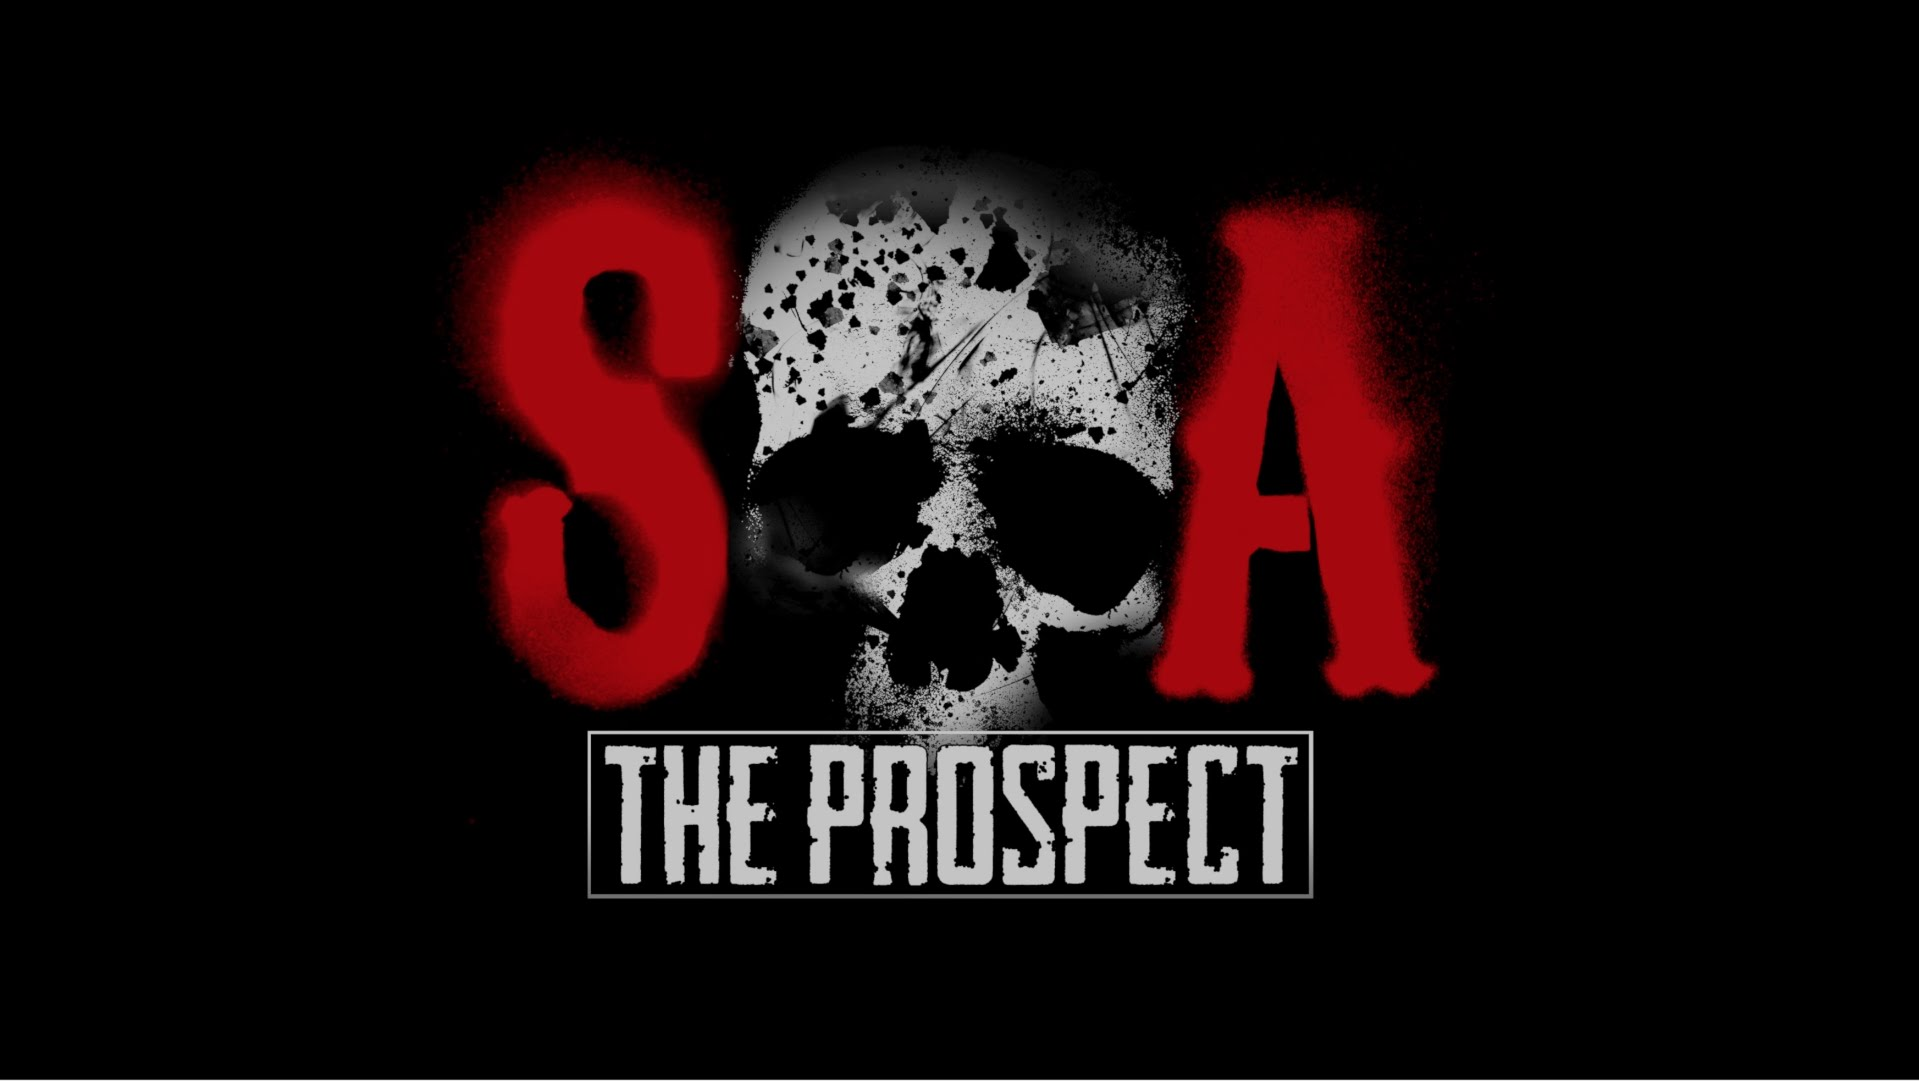 First Trailer for Sons of Anarchy: The Prospect released